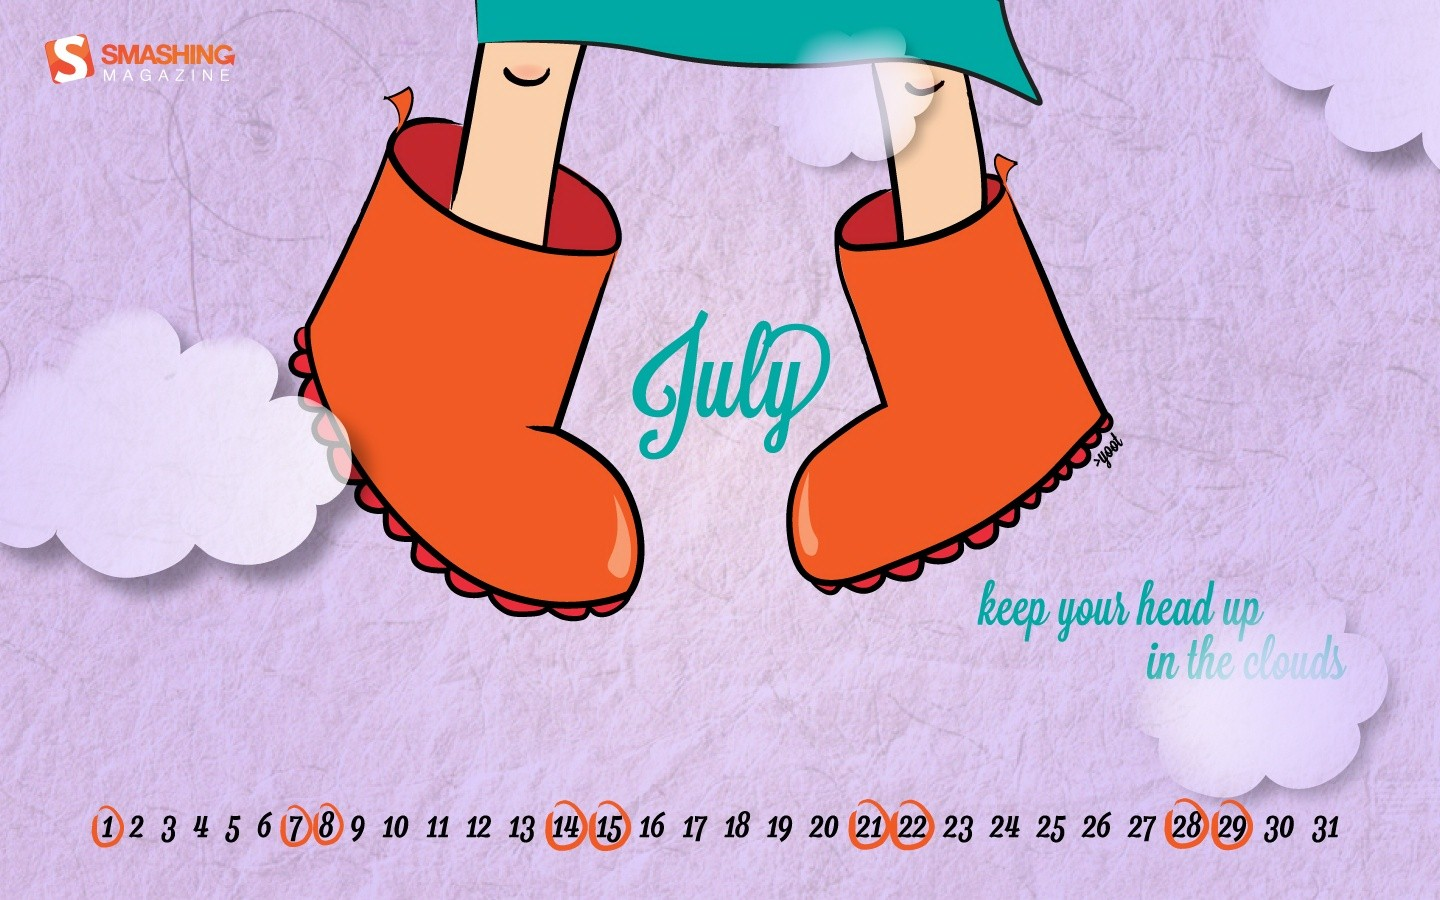 In January Calendar Wallpaper 31449